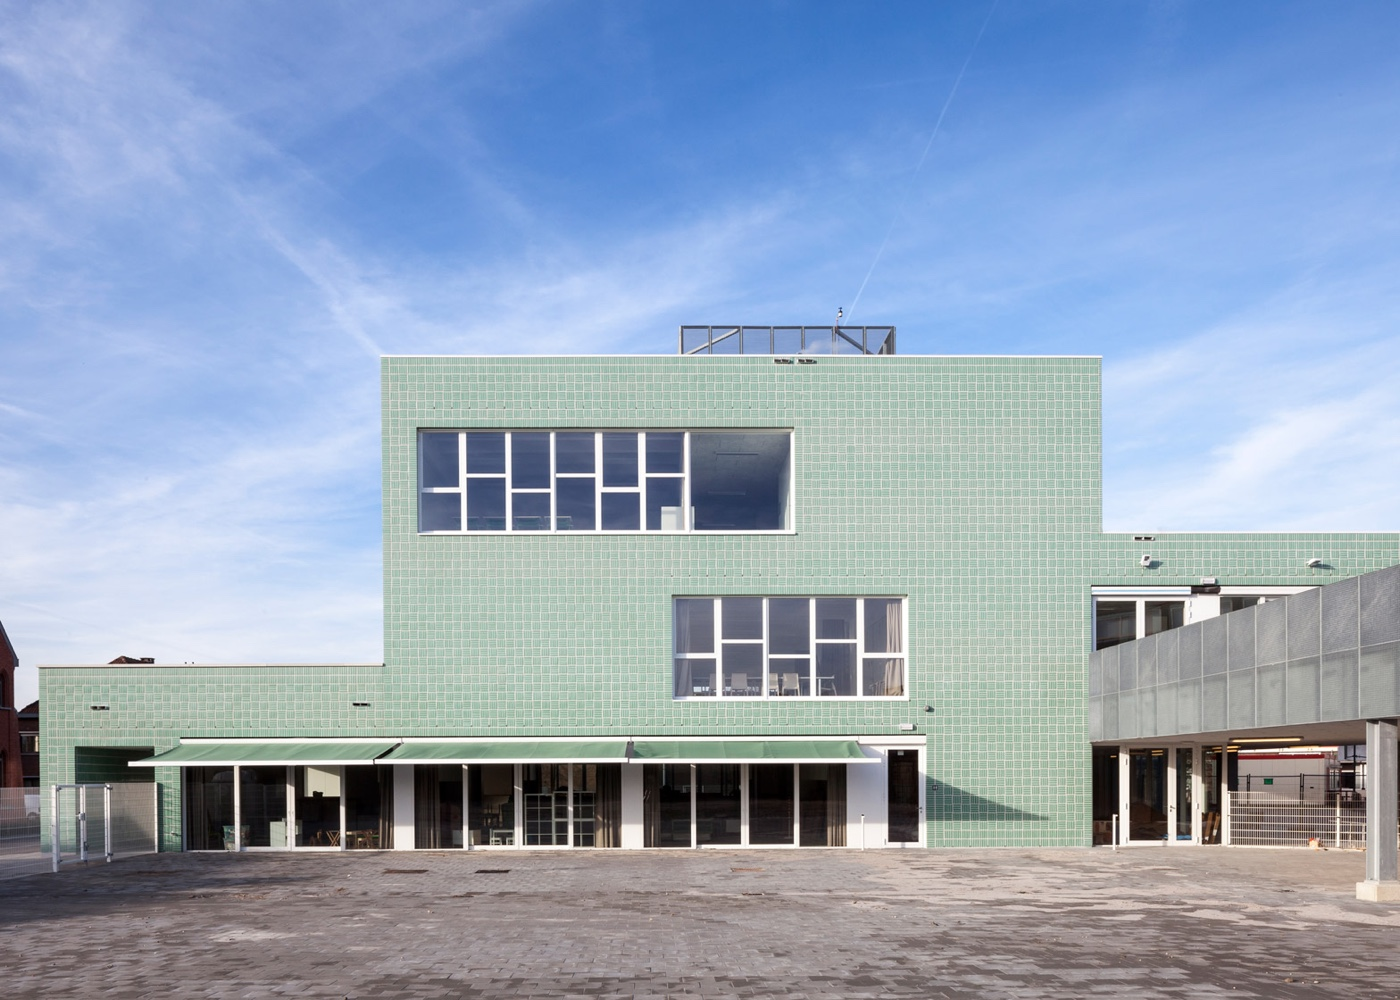 Primary school block in Belgium town of Boom, designed by Areal Architecten.